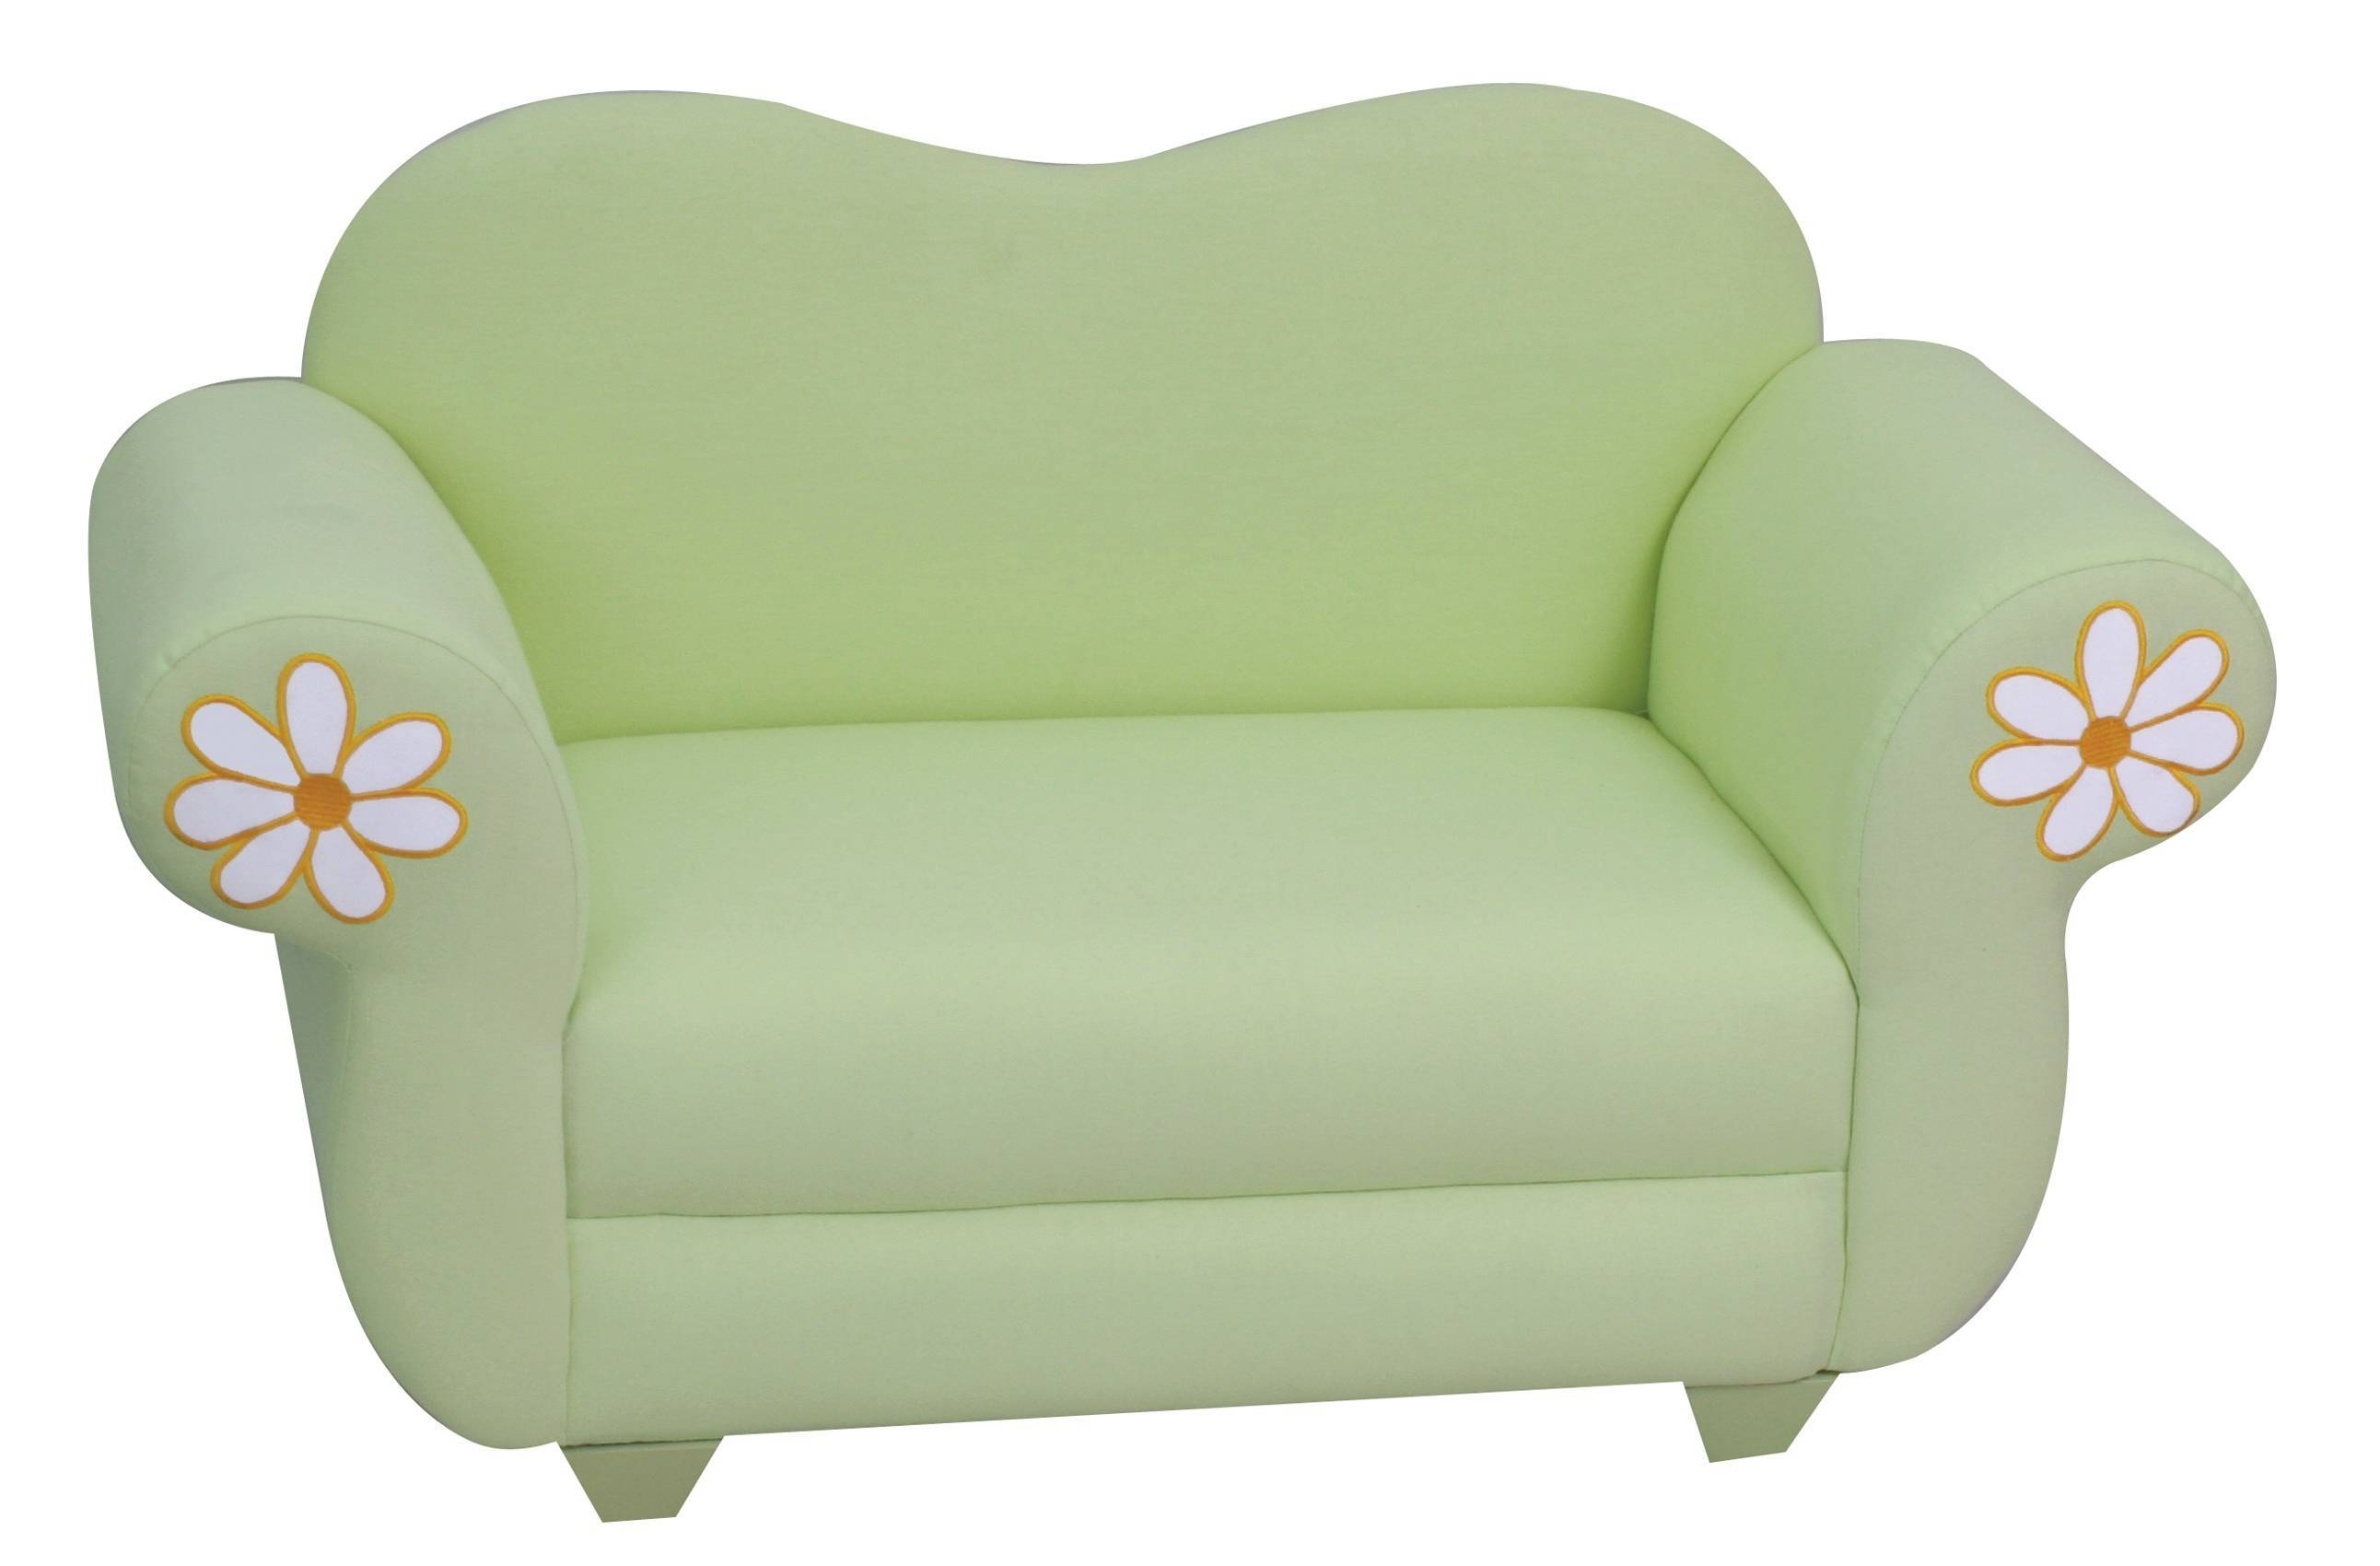 Kids Sofa Chair 33 With Kids Sofa Chair | Jinanhongyu pertaining to Children Sofa Chairs (Image 11 of 30)